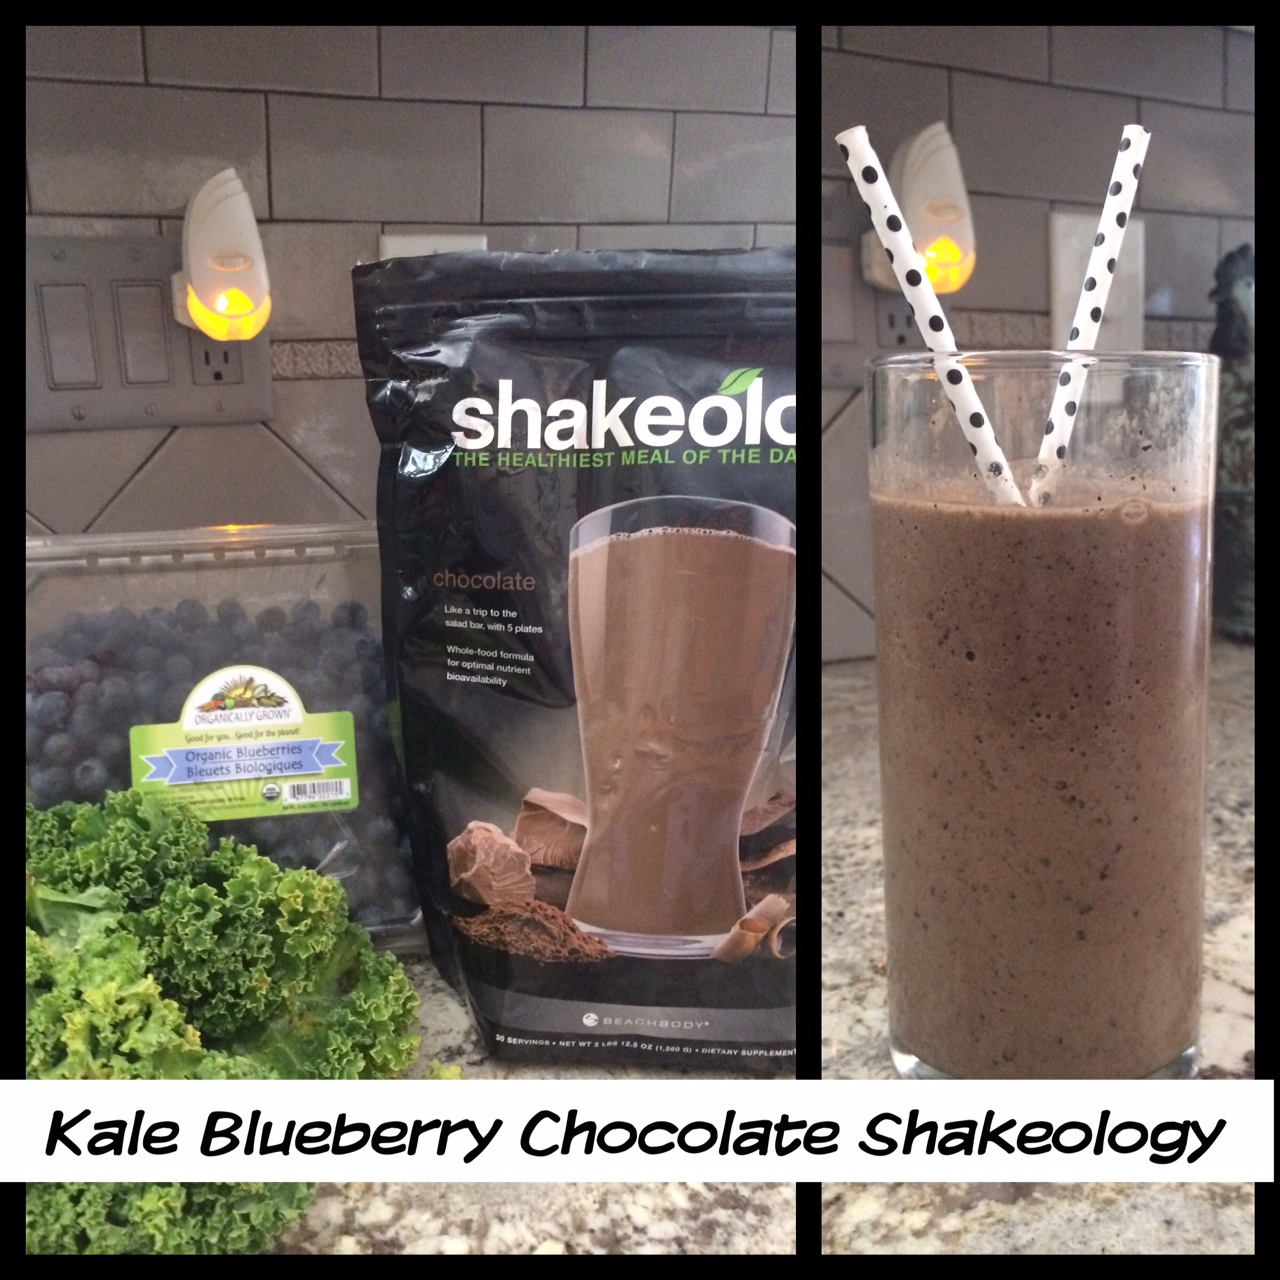 The Kale gave it that dense consistency, blueberries - my favorite and of course, Chocolate Shakeoloy - yum.